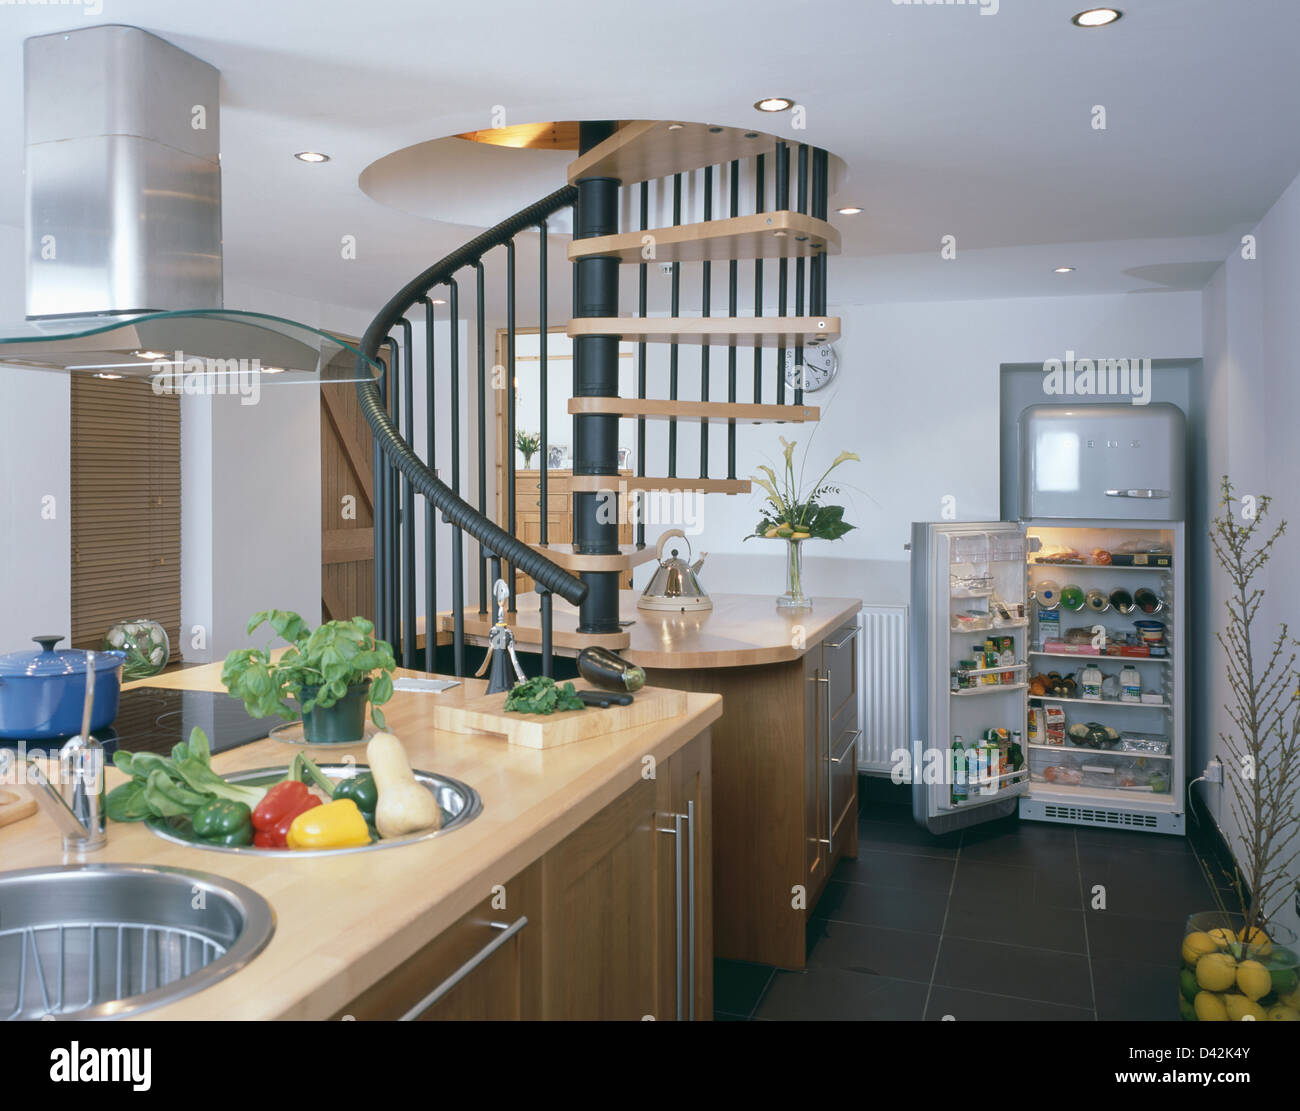 Open Kitchen Gate: Double Stainless-steel Sinks In Island Unit In Basement Kitchen With Stock Photo, Royalty Free